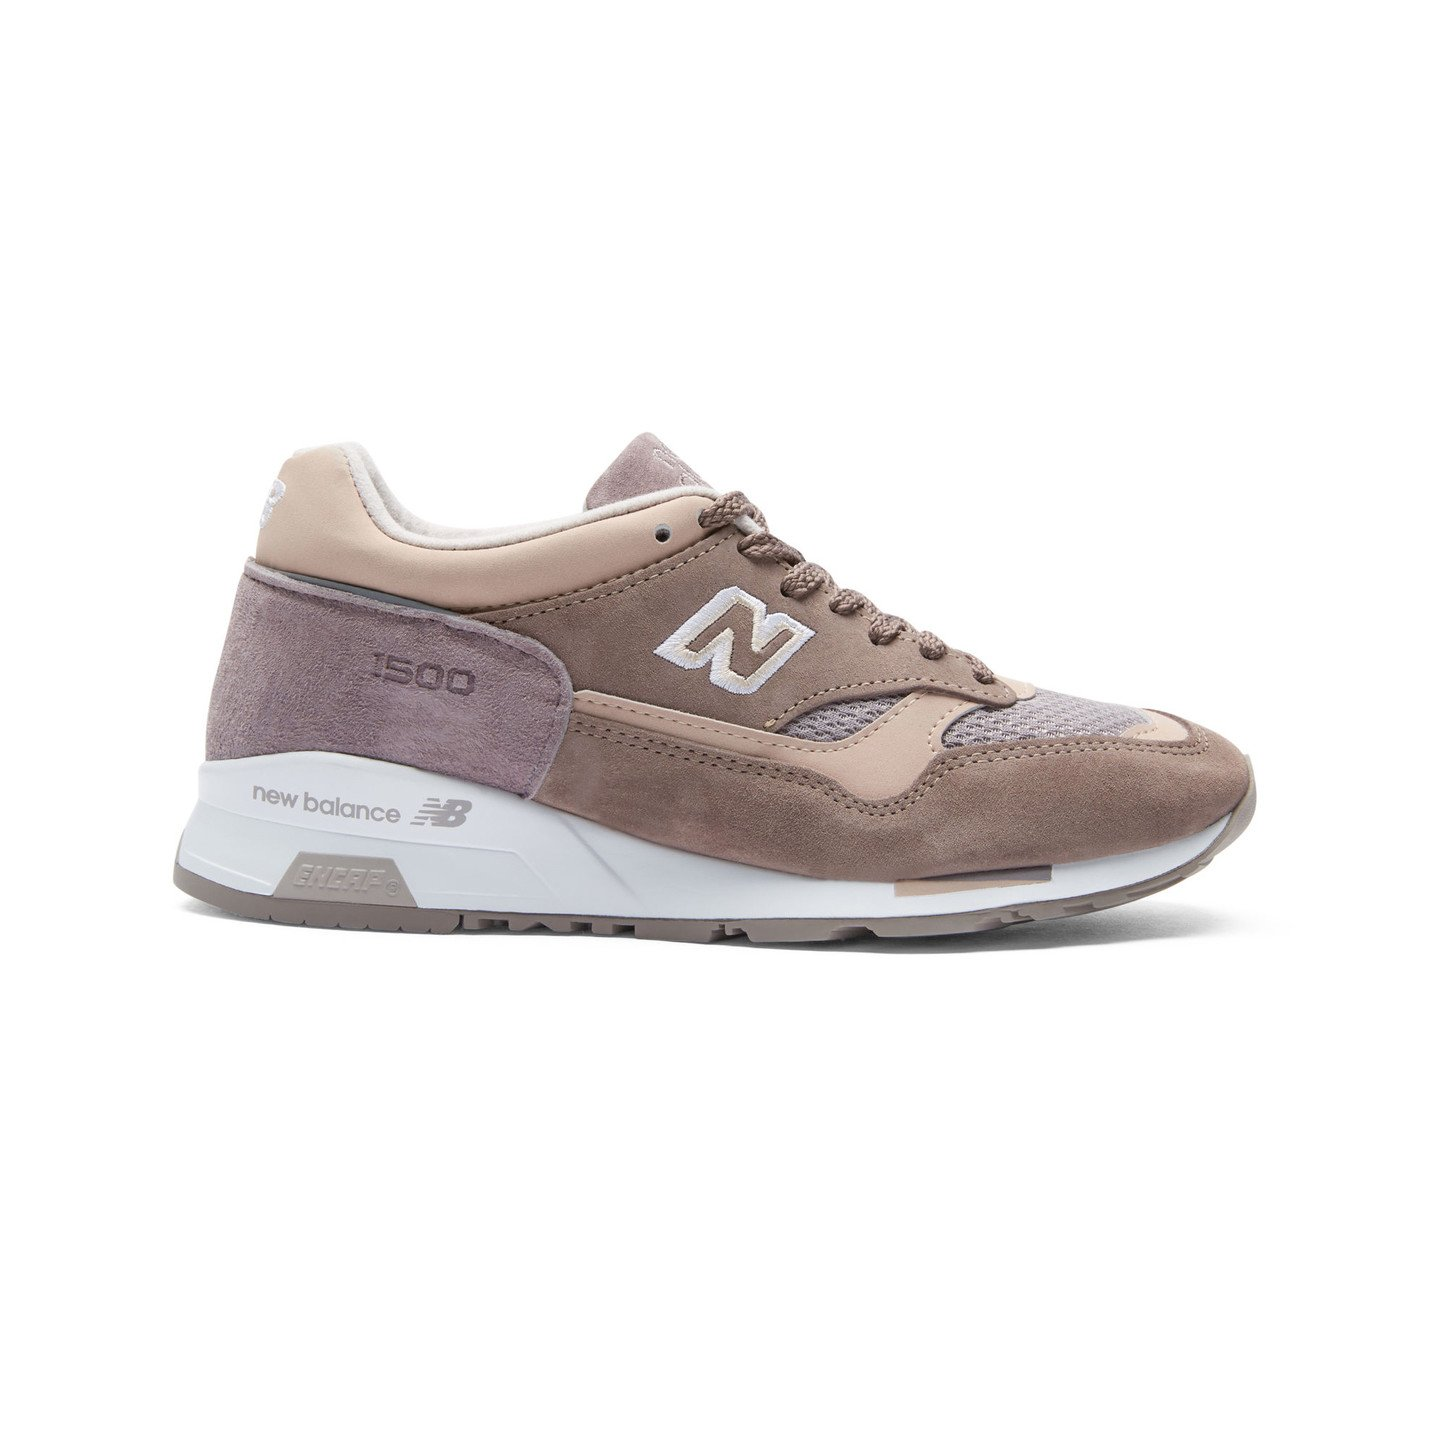 New Balance W1500 PM - Made in England Grey / Beige W1500PM